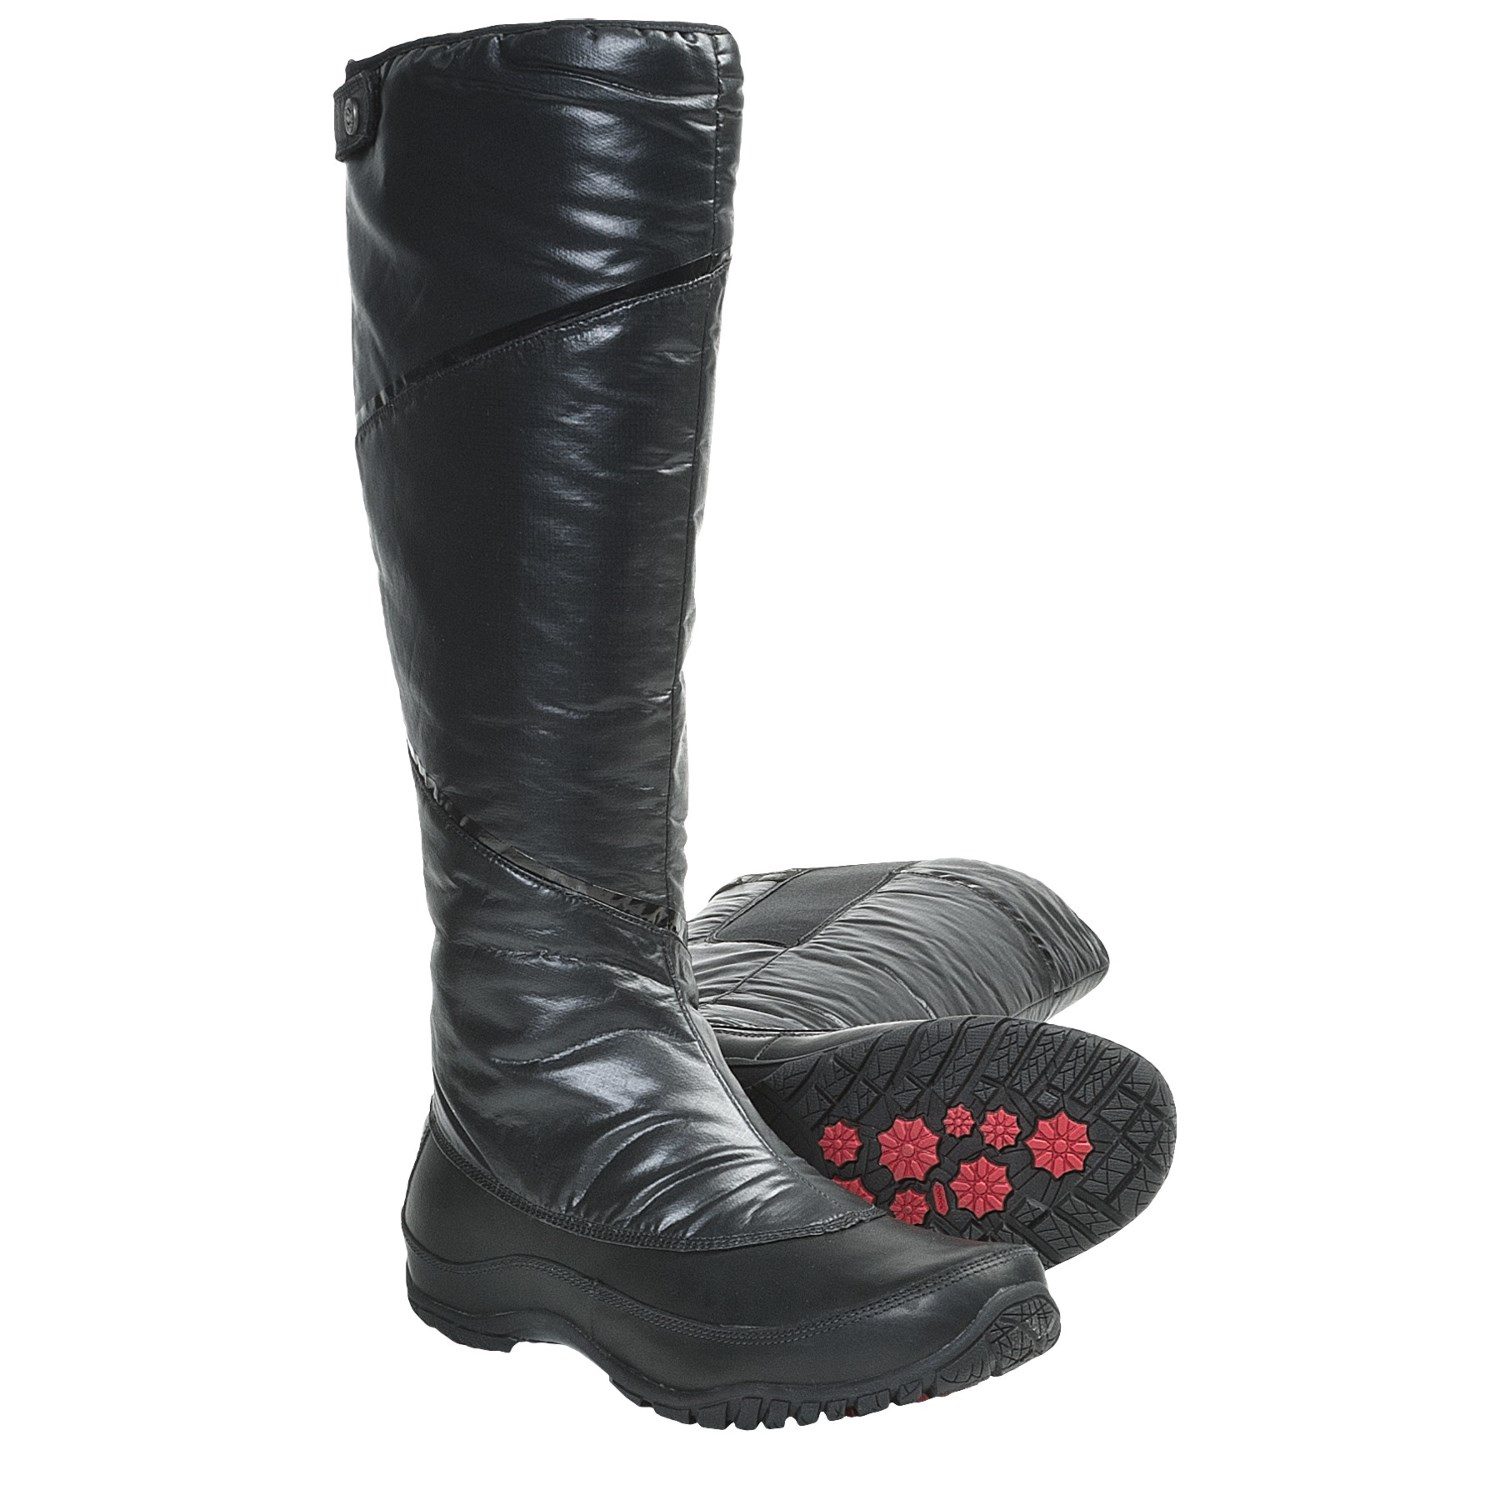 the purna zip winter boots for